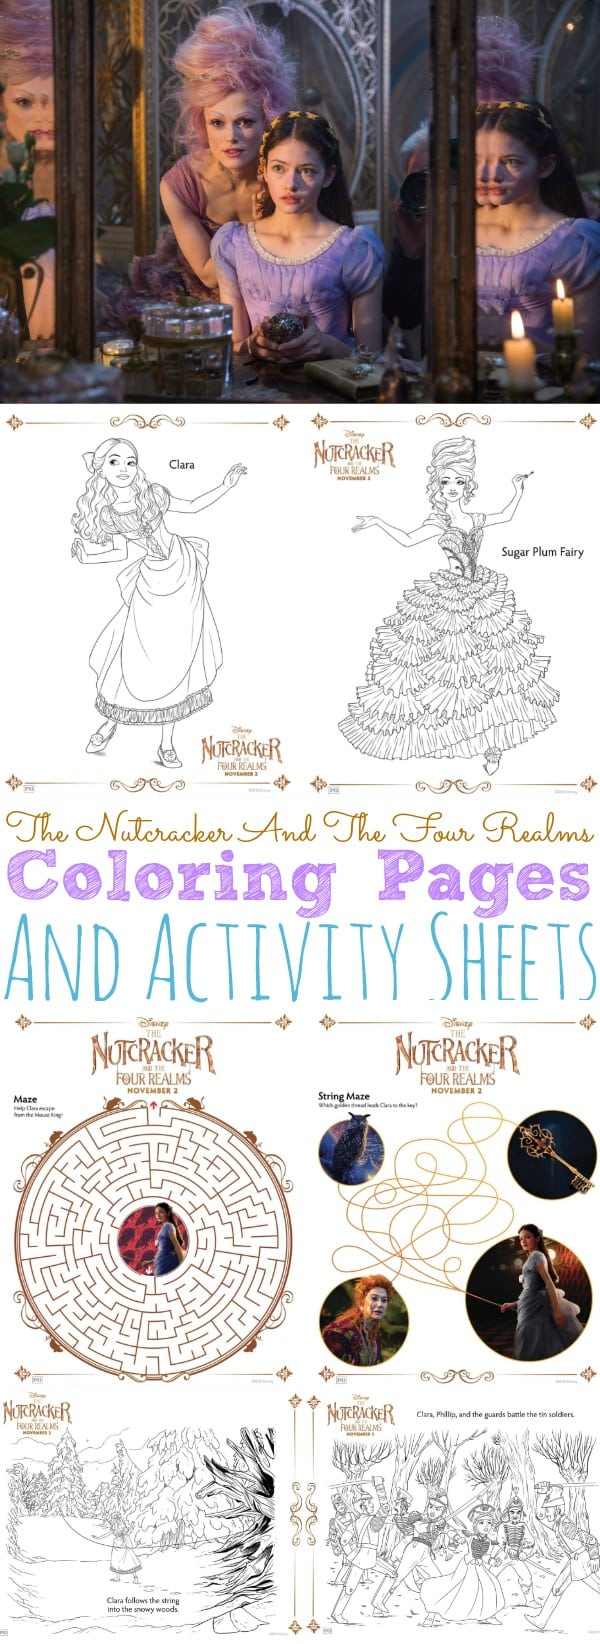 Are your kids excited about Disney's newest film The Nutcracker and the Four Realms? I have some fun Free The Nutcracker And The Four Realms Coloring Pages and Activity Sheets! Perfect for celebrating the release of the film! Head on over and print out your free coloring pages for The Nutcracker and the Four Realms! #DisneysNutcrackerEvent #DisneysNutcracker #DisneyColoringPages #FreeColoringPages #NutcrackerColoringPages #SugarPlumFairyColoringPages #ColoringPages #MovieColoringPages #TheNutcrackerandtheFourRealms